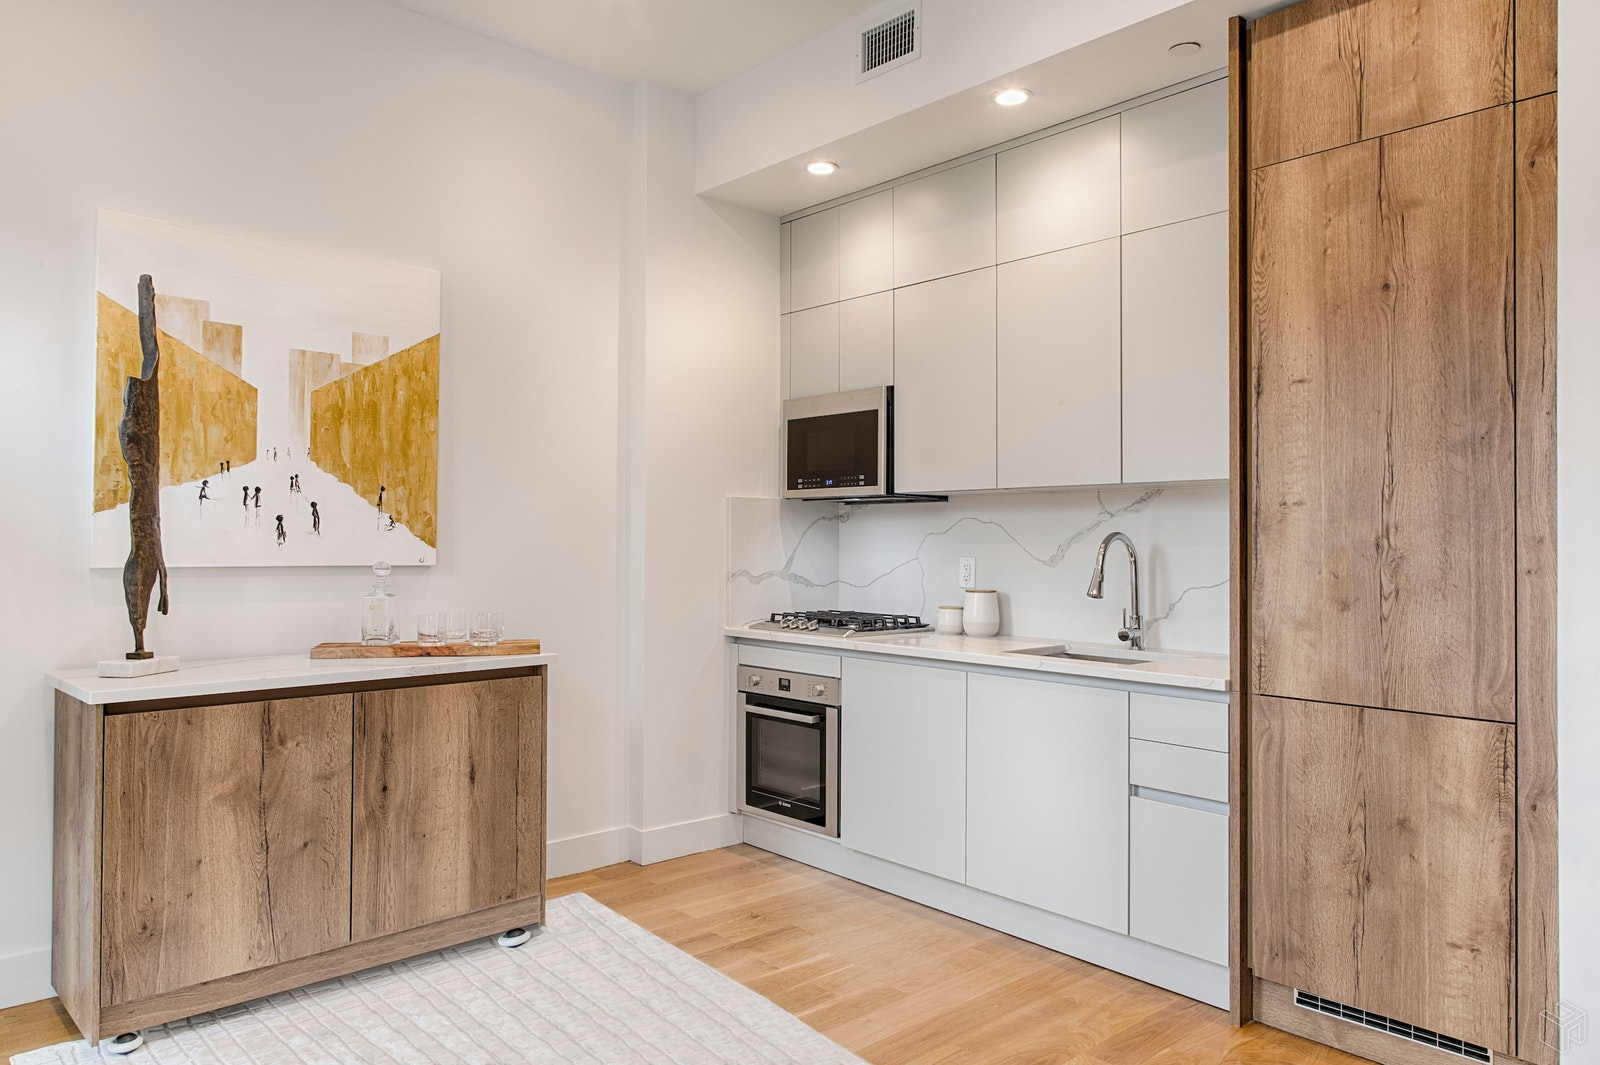 187 Gates Avenue 3, Clinton Hill, Brooklyn, NY, 11238, $975,000, Sold Property, Halstead Real Estate, Photo 1